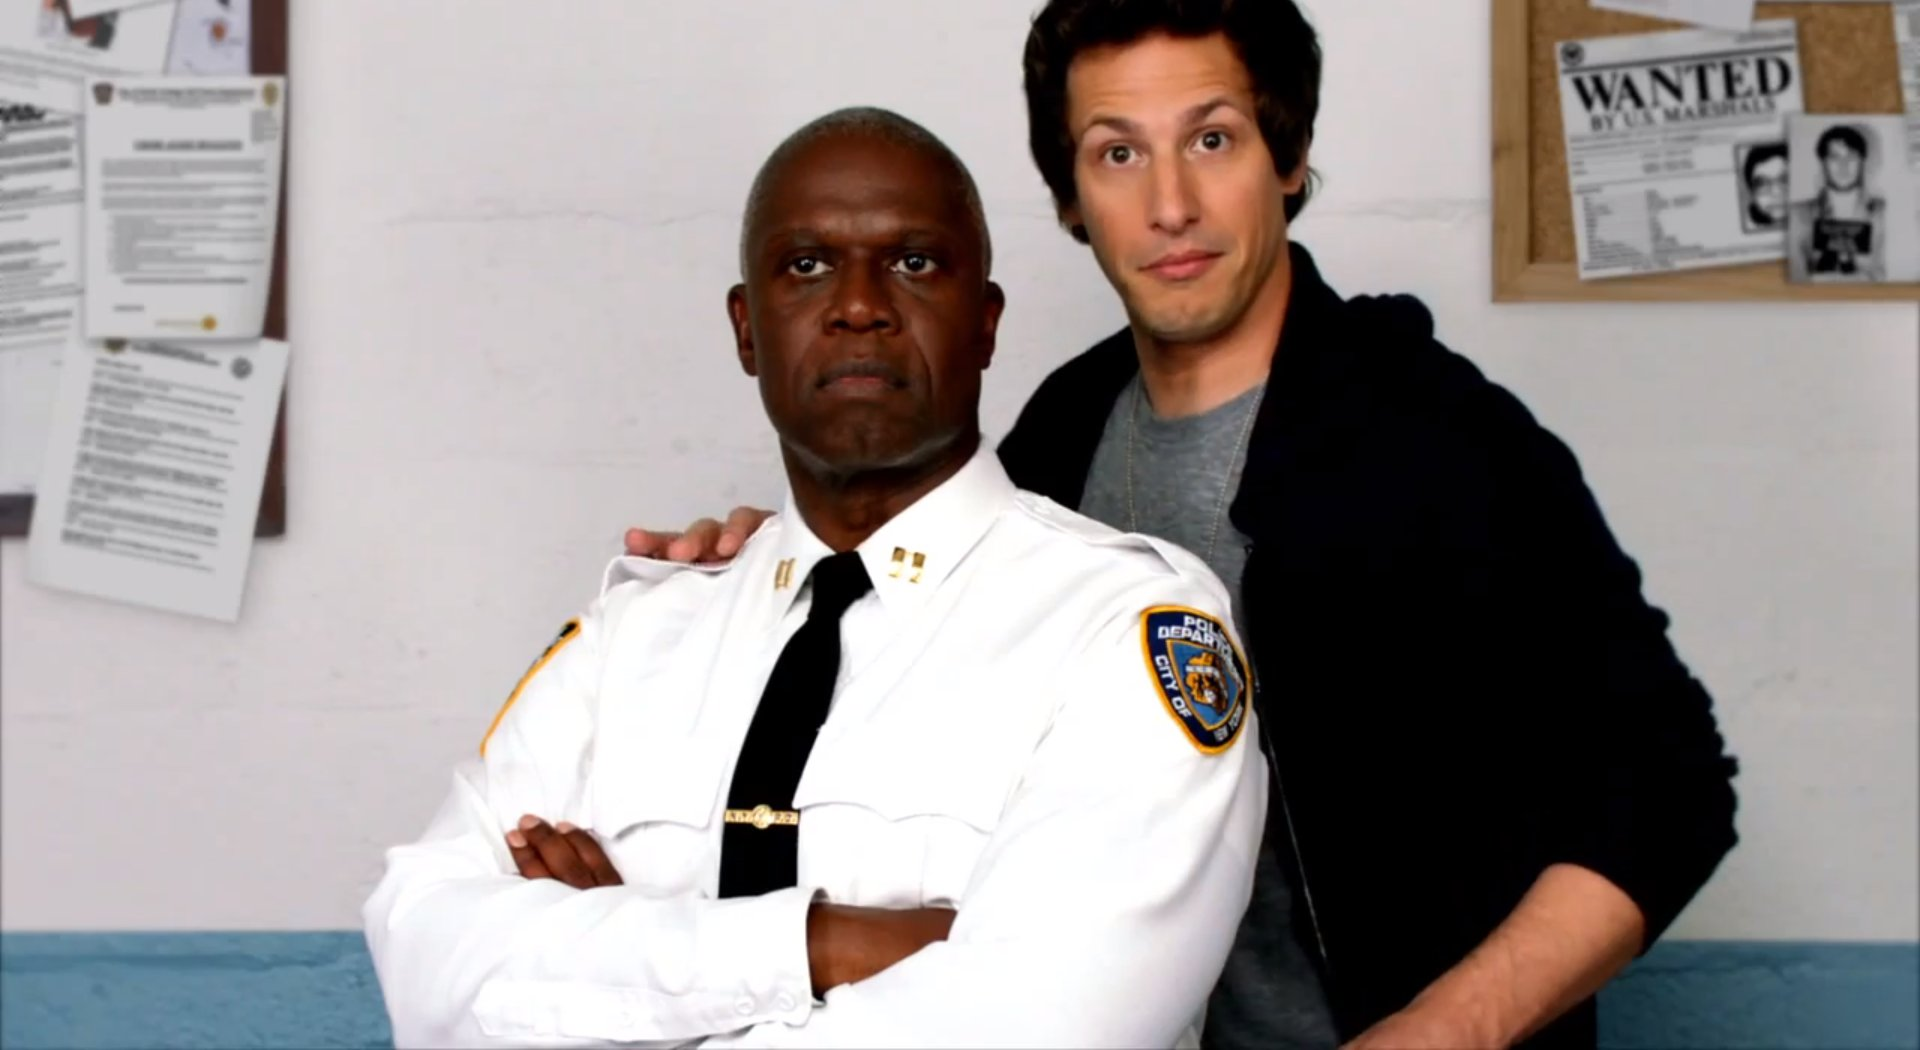 Brooklyn 9-9 Photo ID